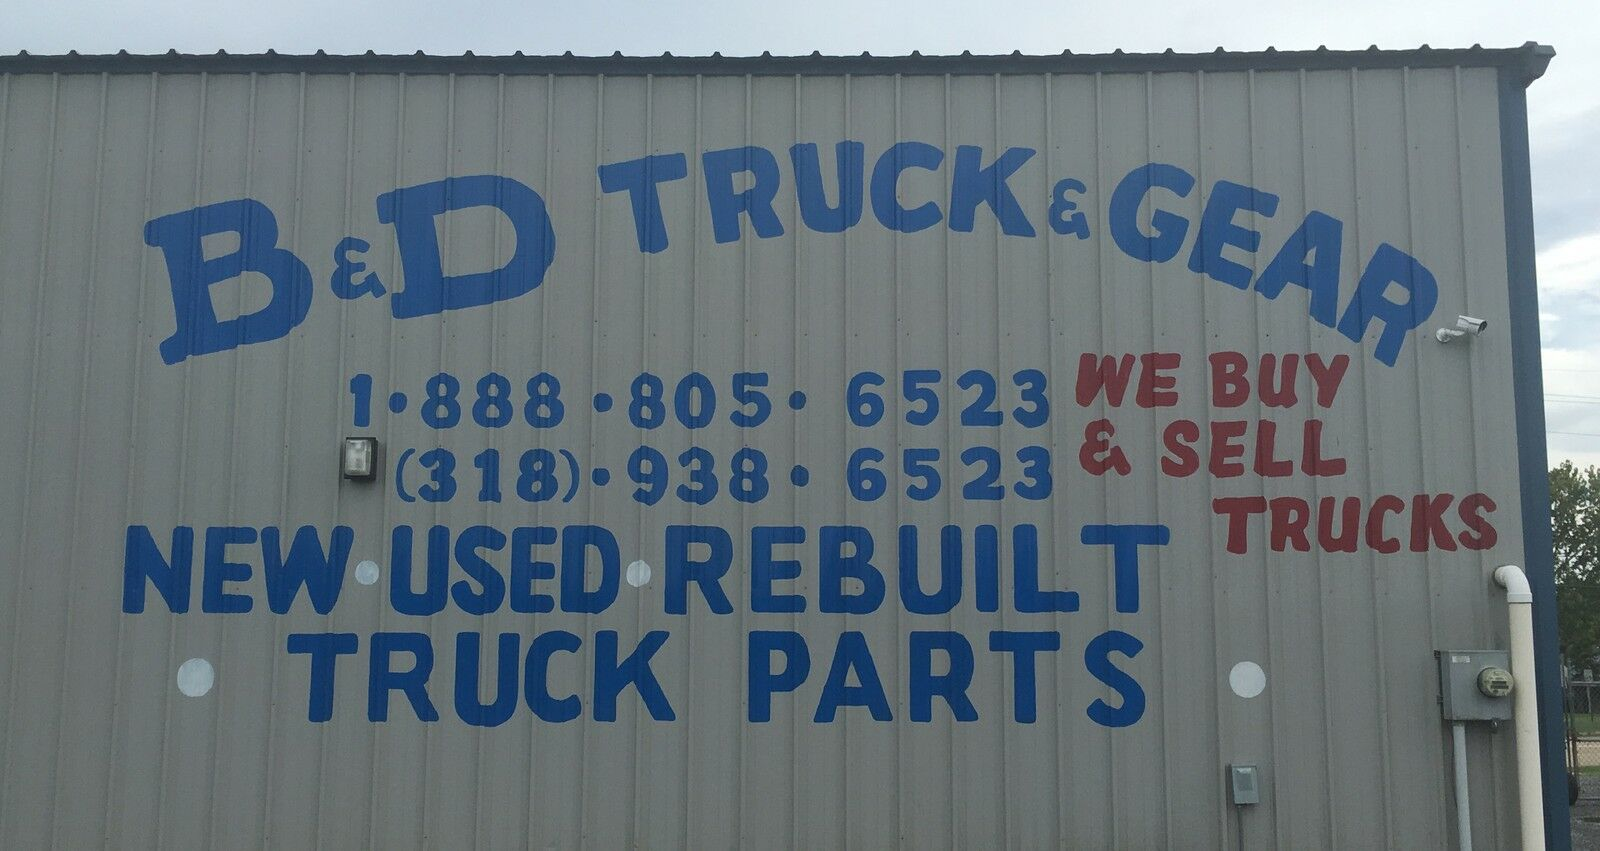 B&D Truck and Gear